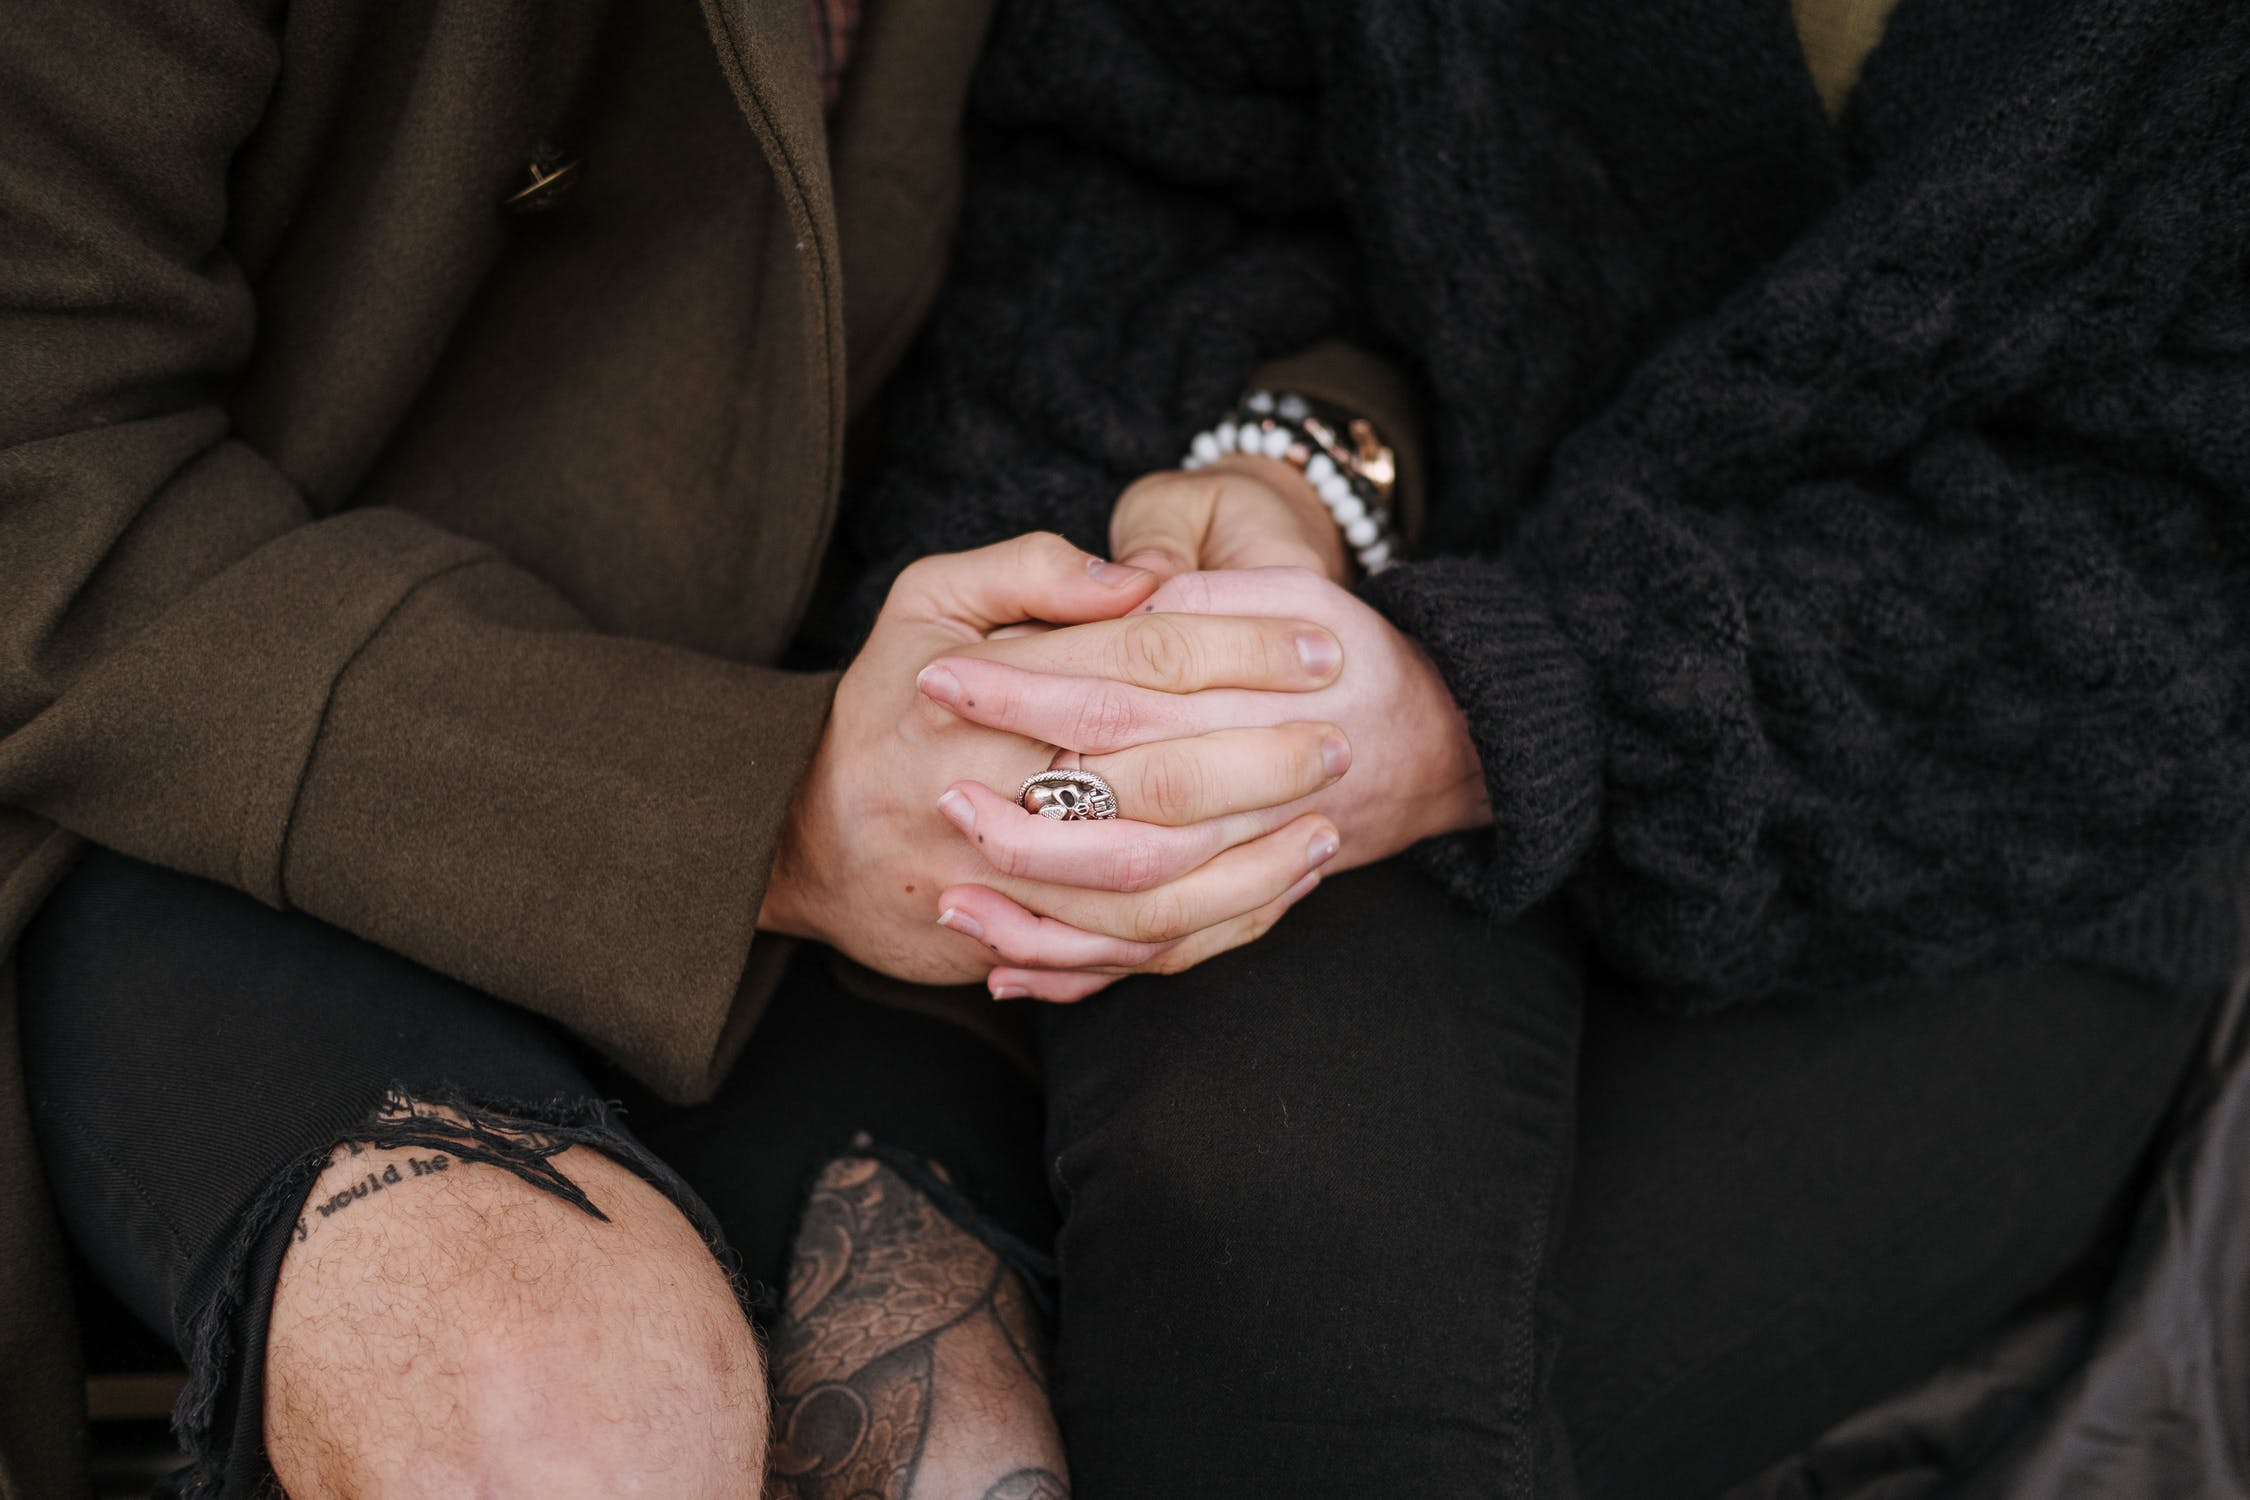 Couple's joined hands rest on their laps as they sit.